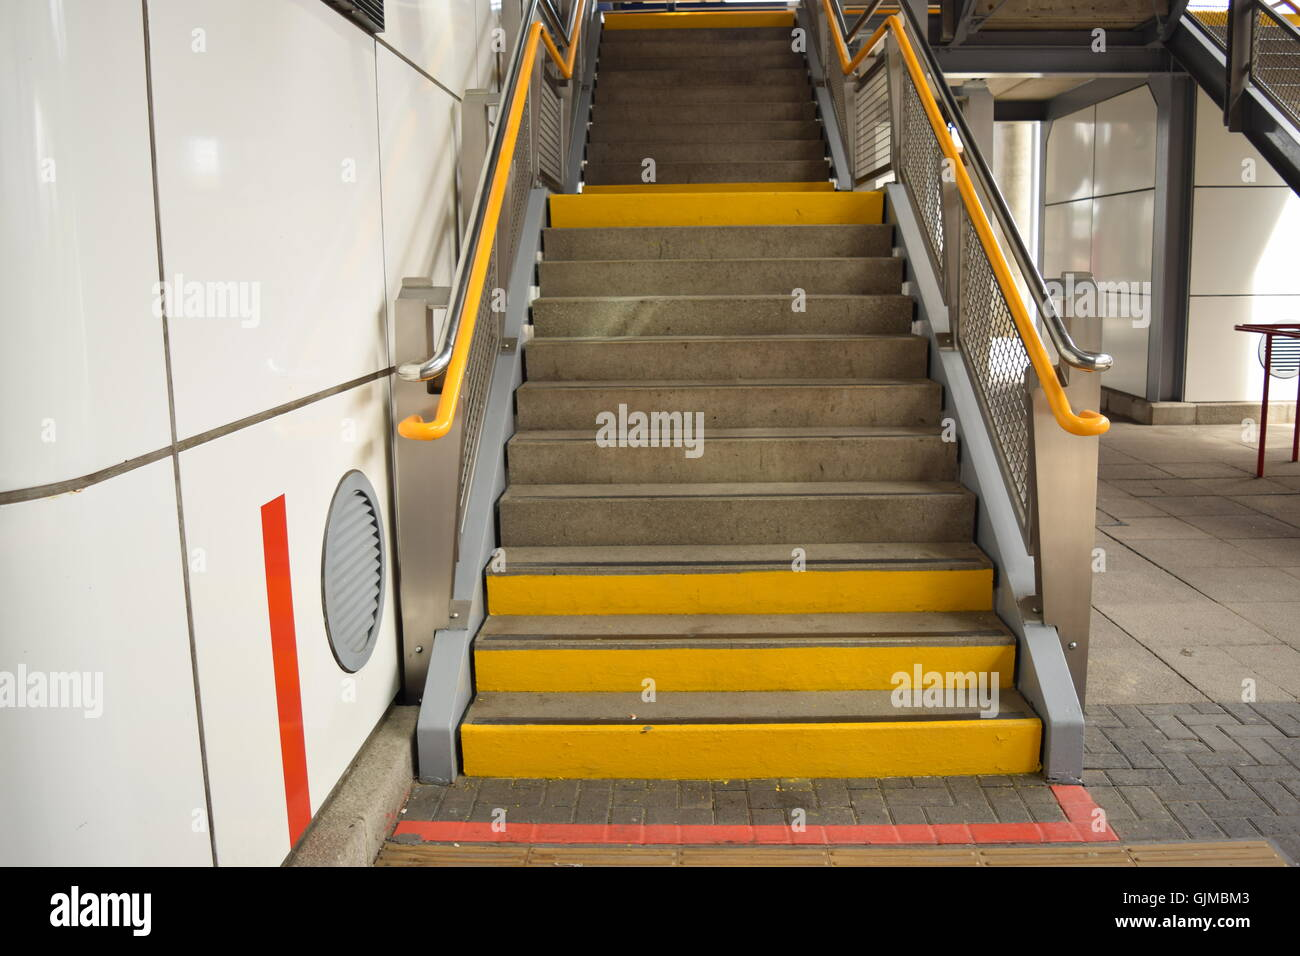 Flight of Stairs at an Overground Station - Stock Image